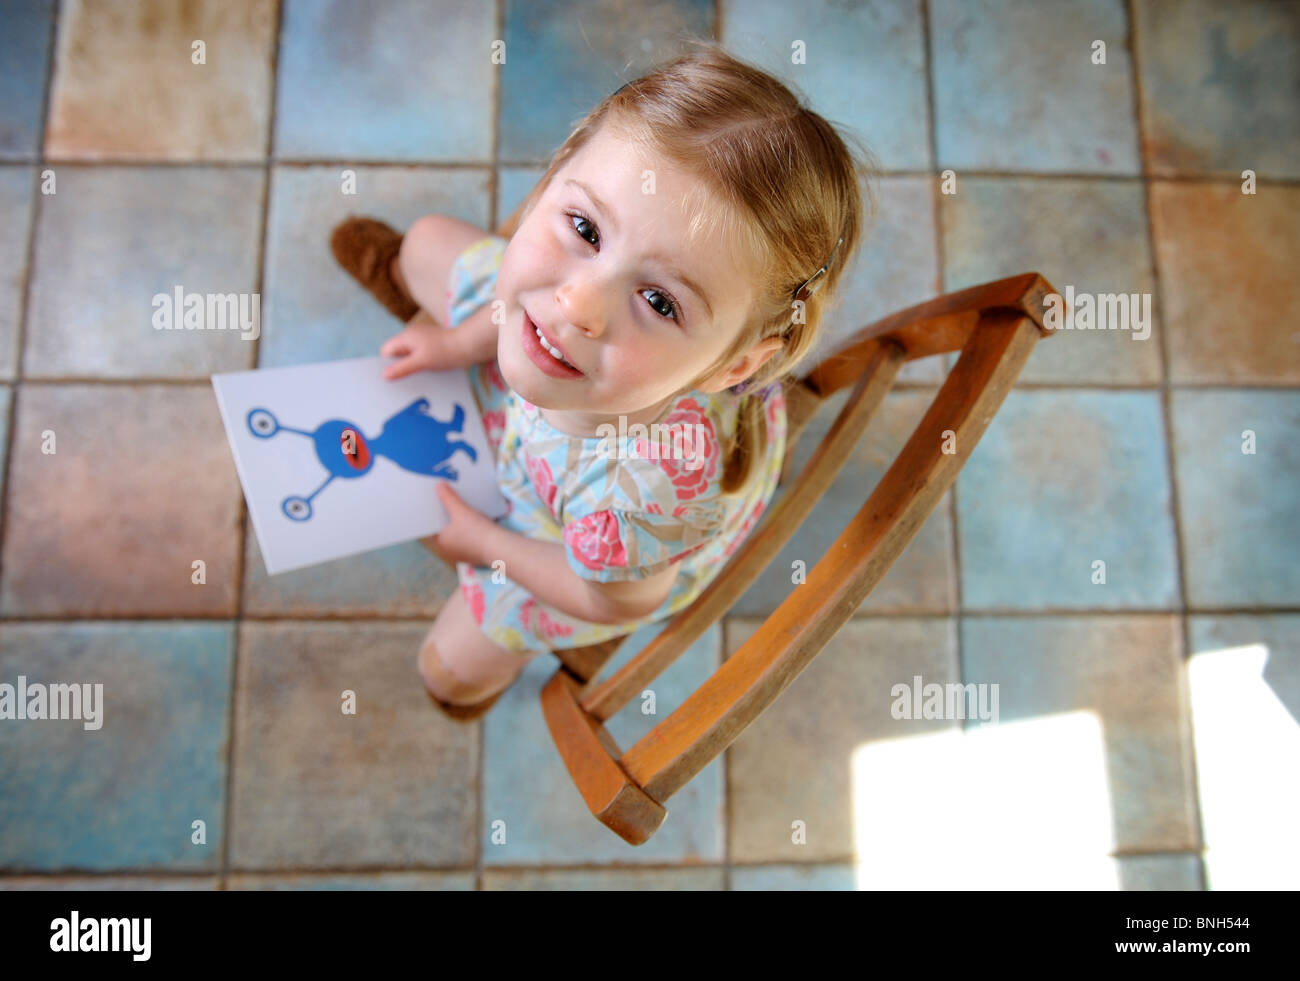 A three year old girl with a picture of the alien character Bic who is used in a test for specific language impairments Stock Photo